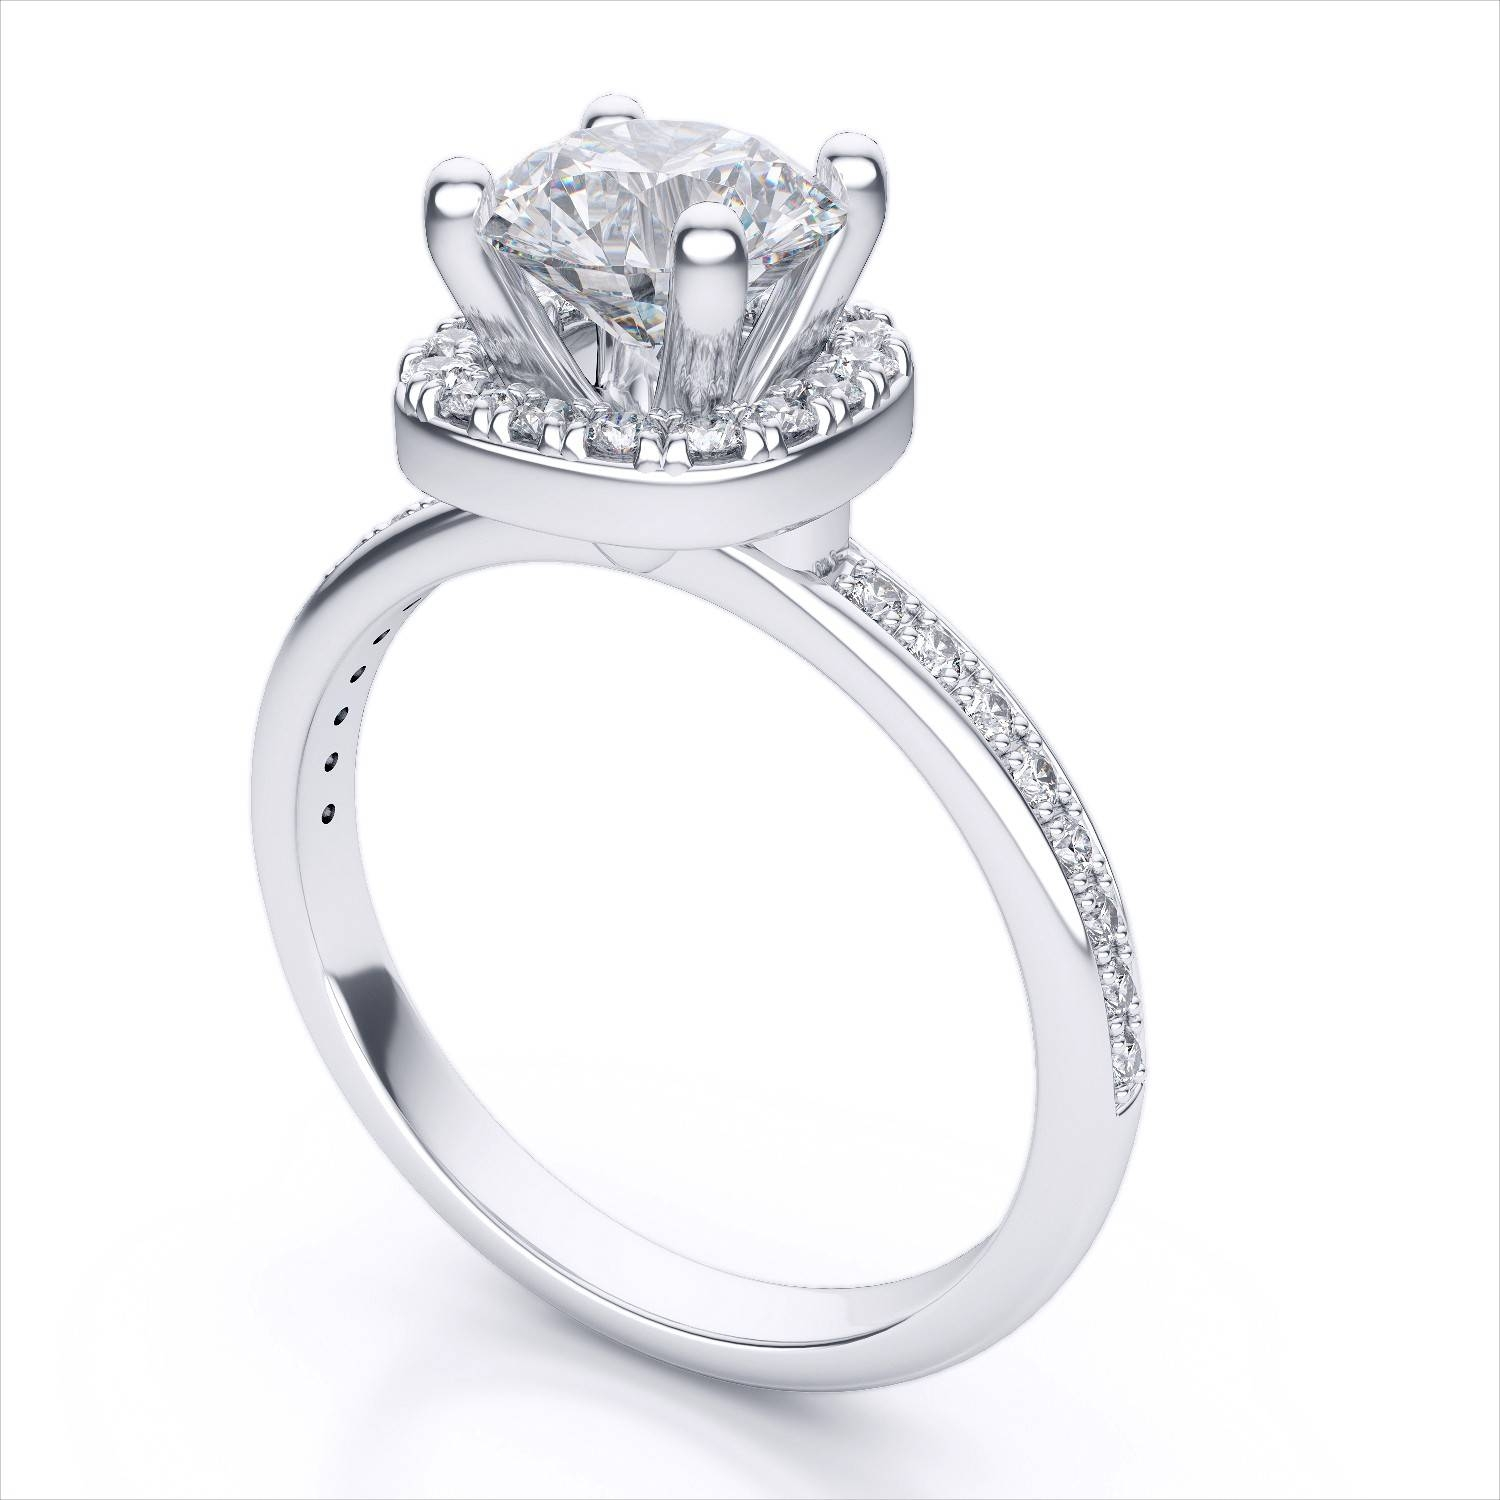 pave prong jewellery learn is diamond the engagement beautiful vs world for related ring post jewelry of used settings elegant in all better about setting which